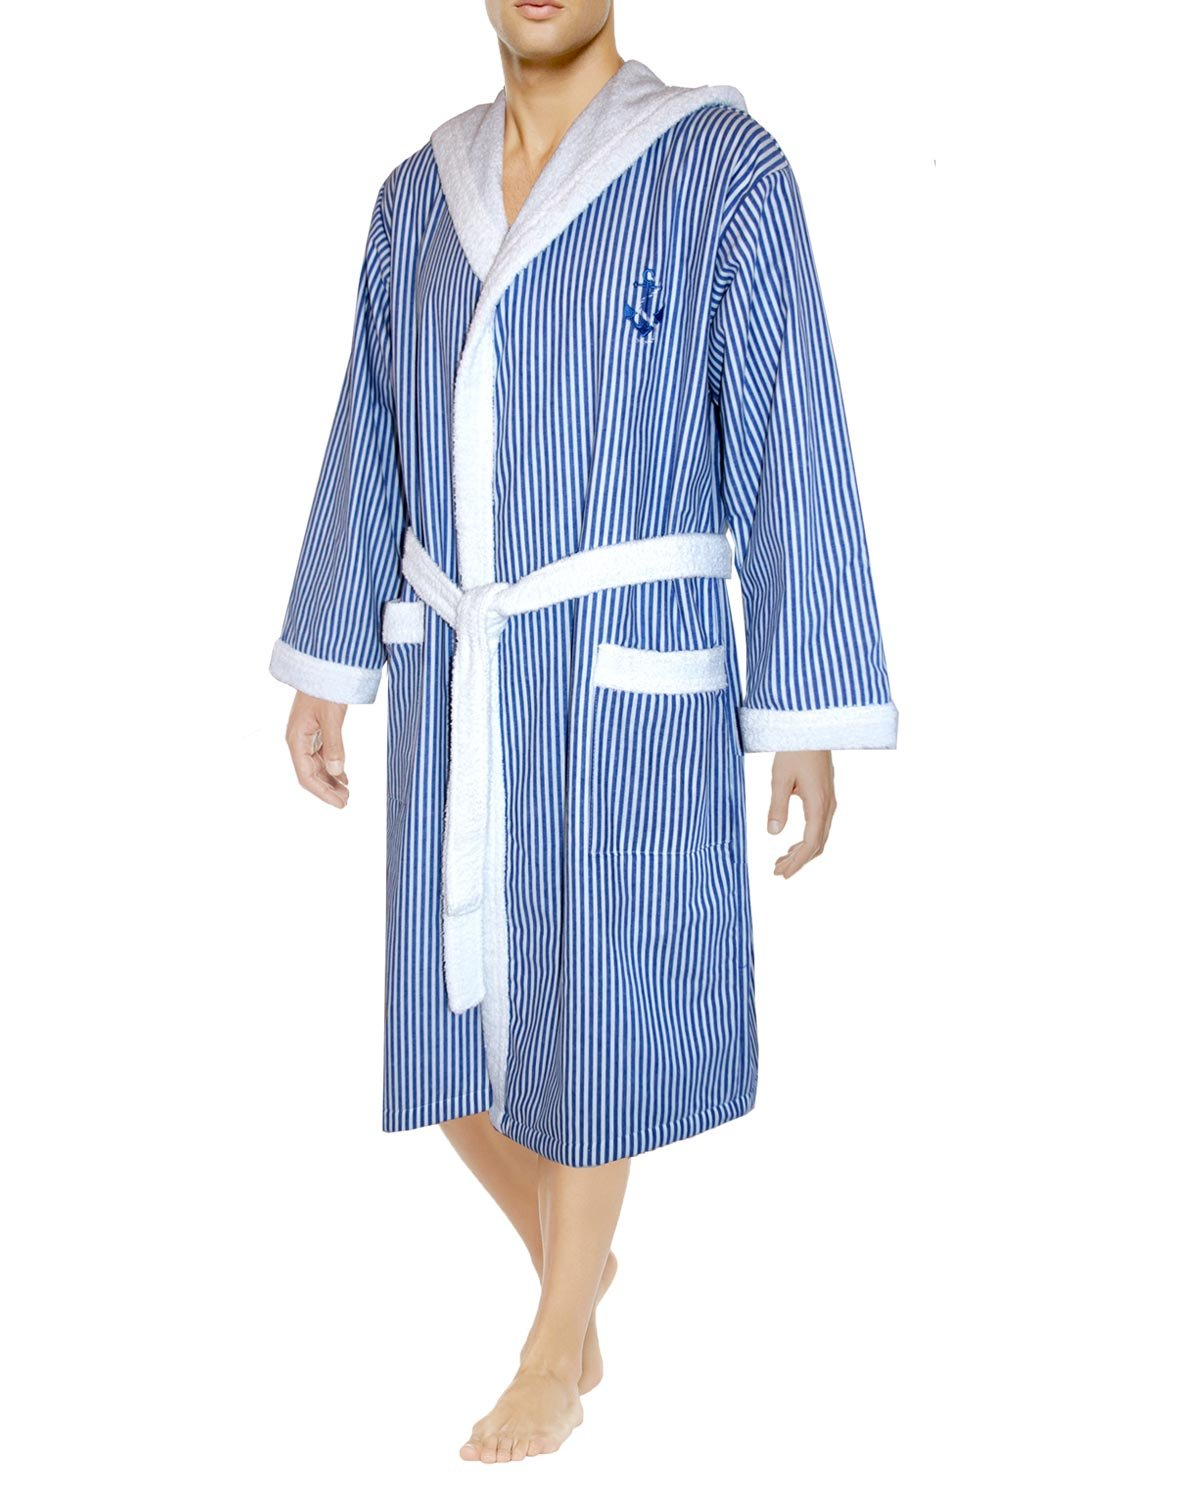 Armani International Nautical Hooded Bathrobe Large